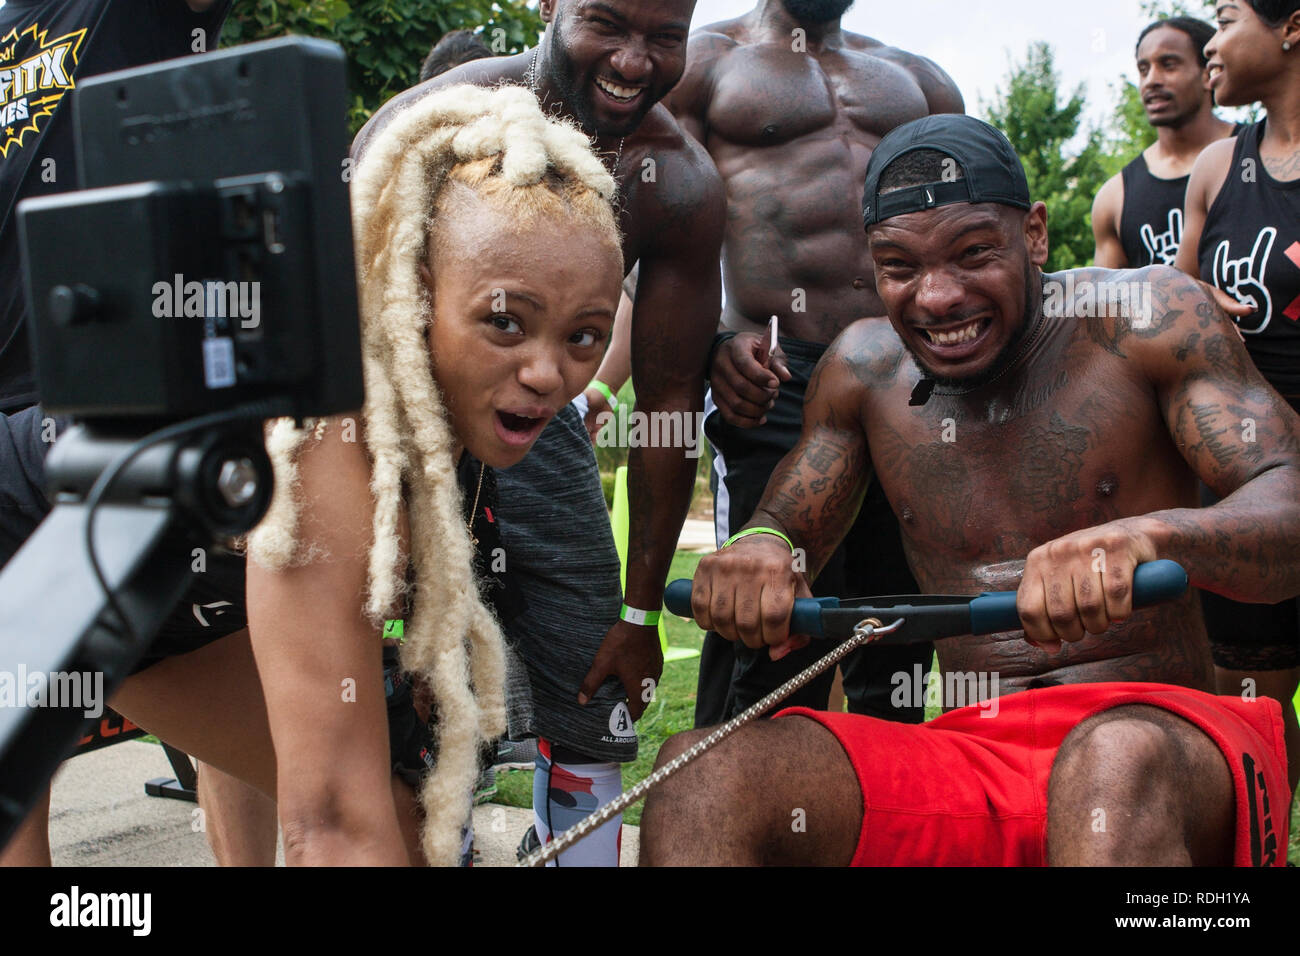 A man grimaces as he does as many reps as he can on a rowing machine as his team competes in Atlanta Field Day on July 14, 2018 in Atlanta, GA. - Stock Image